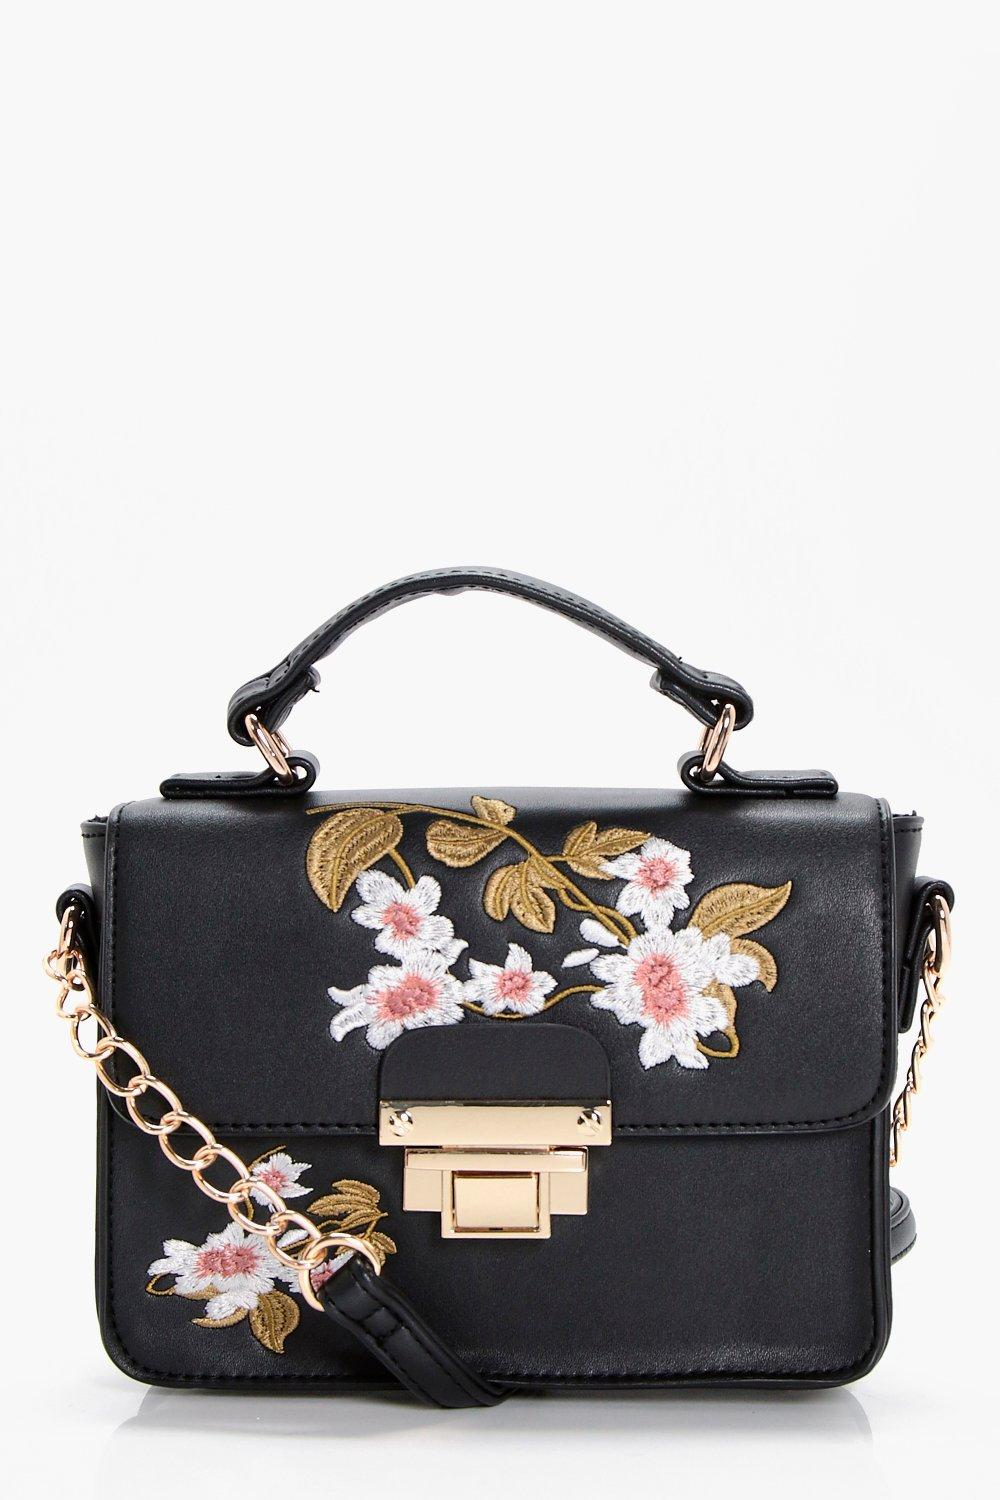 Embroidery And Lock Cross Body - black - Lola Embr